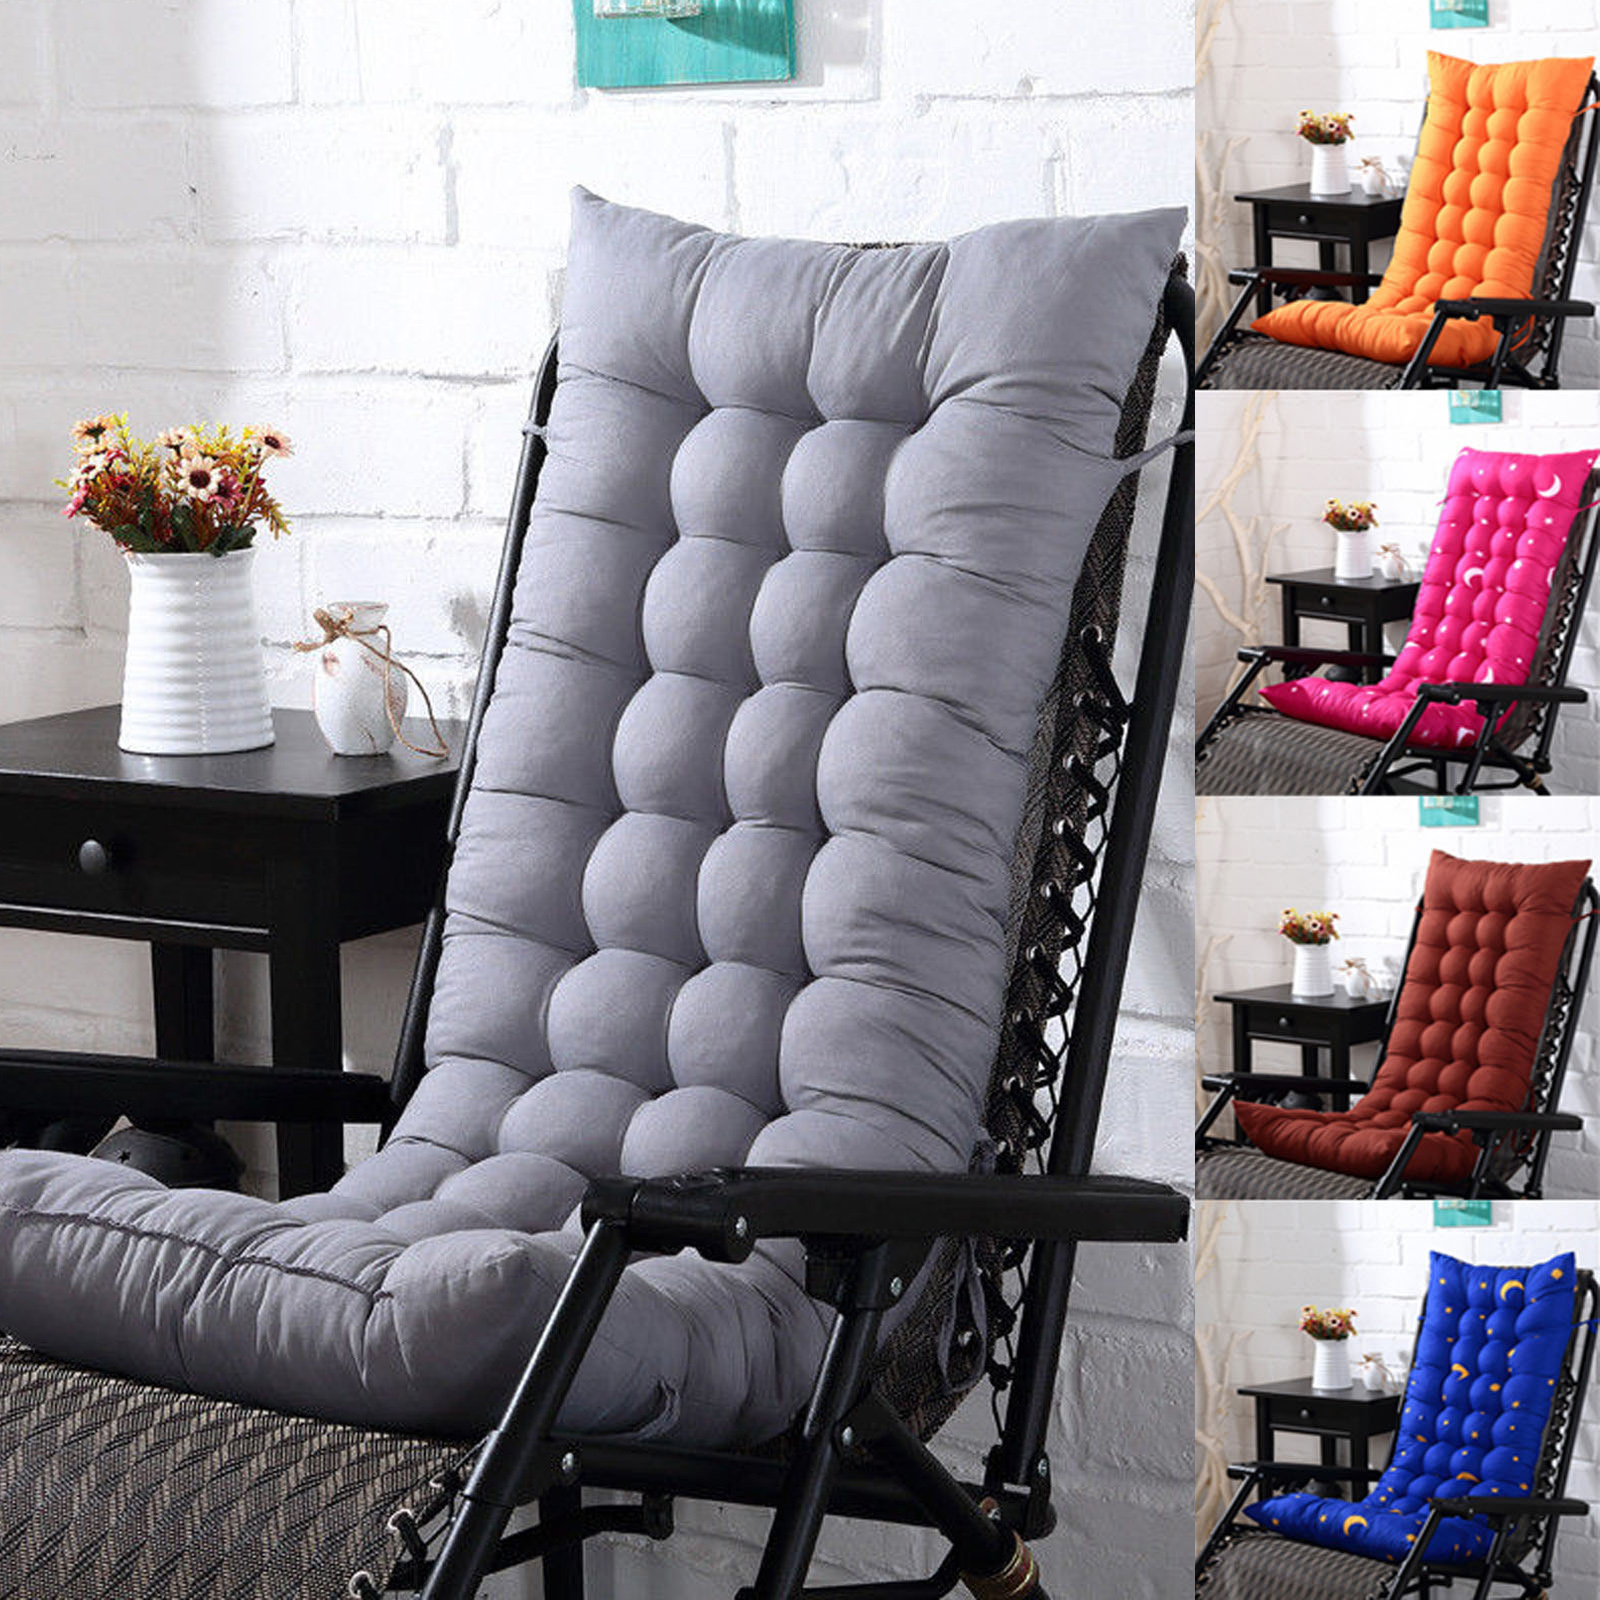 Patio Chairs Outdoor Plastic Lounge Cushions